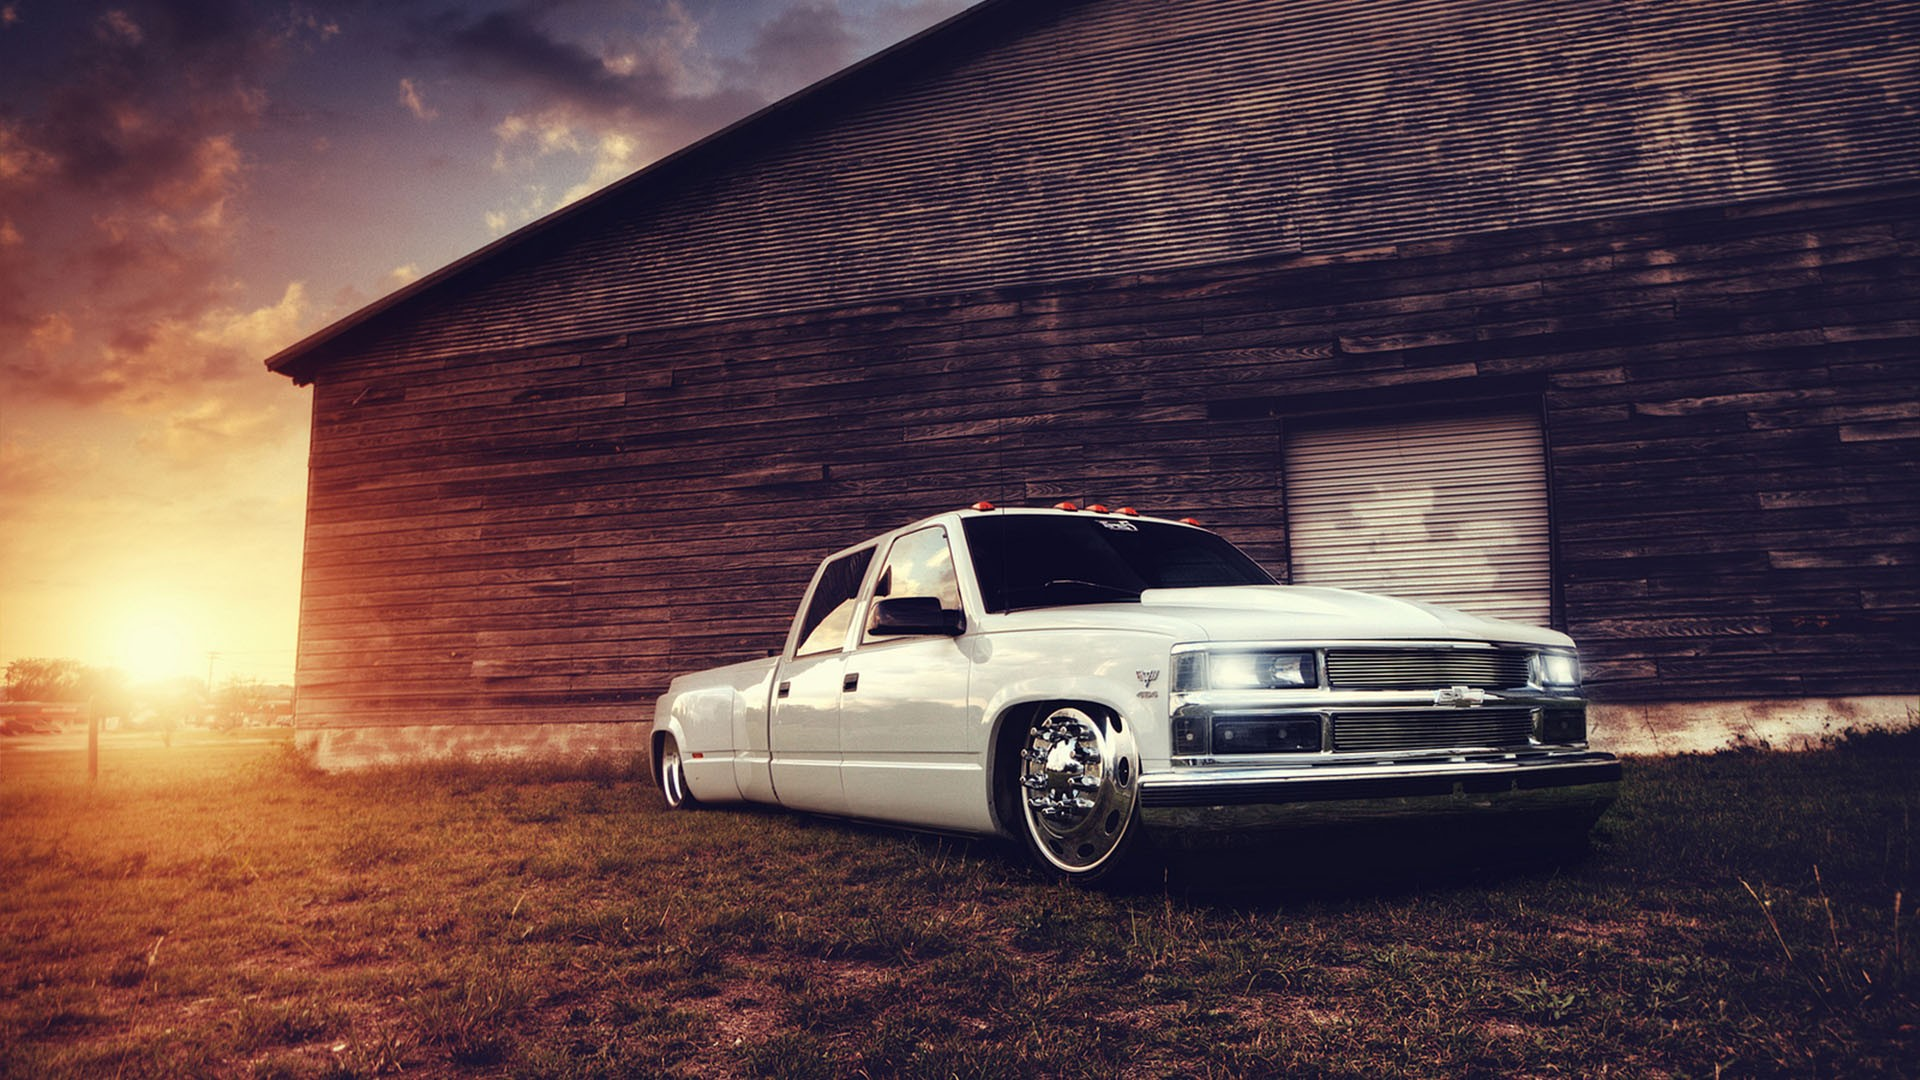 Chevy Truck HD Wallpaper | Background Image | 1920x1080 | ID:330623 - Wallpaper Abyss